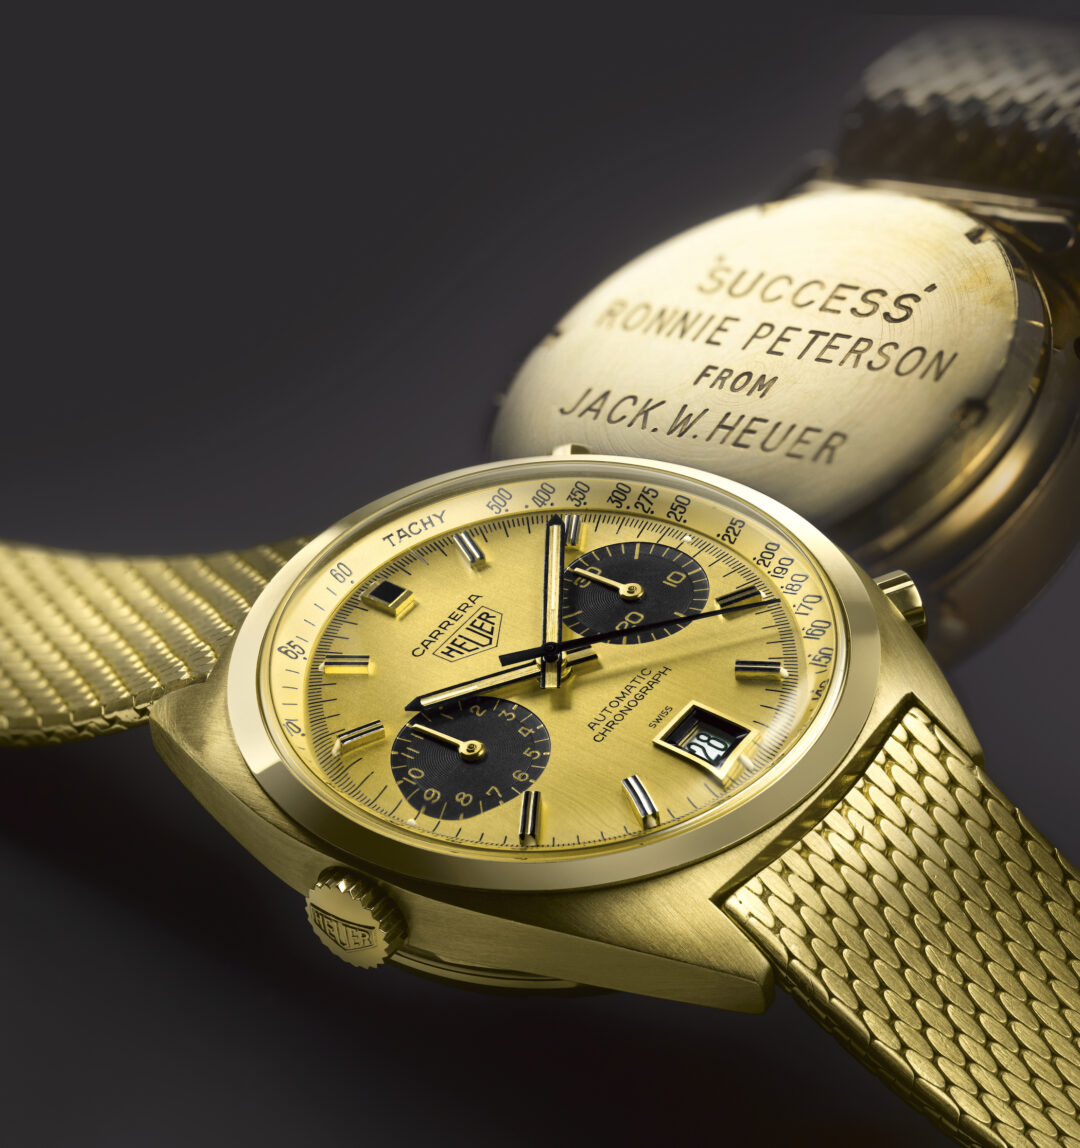 The original 'Heuer Carrera' was sold at auction in May 2016, for a breaking price of 225'000 CHF. Peterson's Heuer is now owned by the TAG Heuer museum